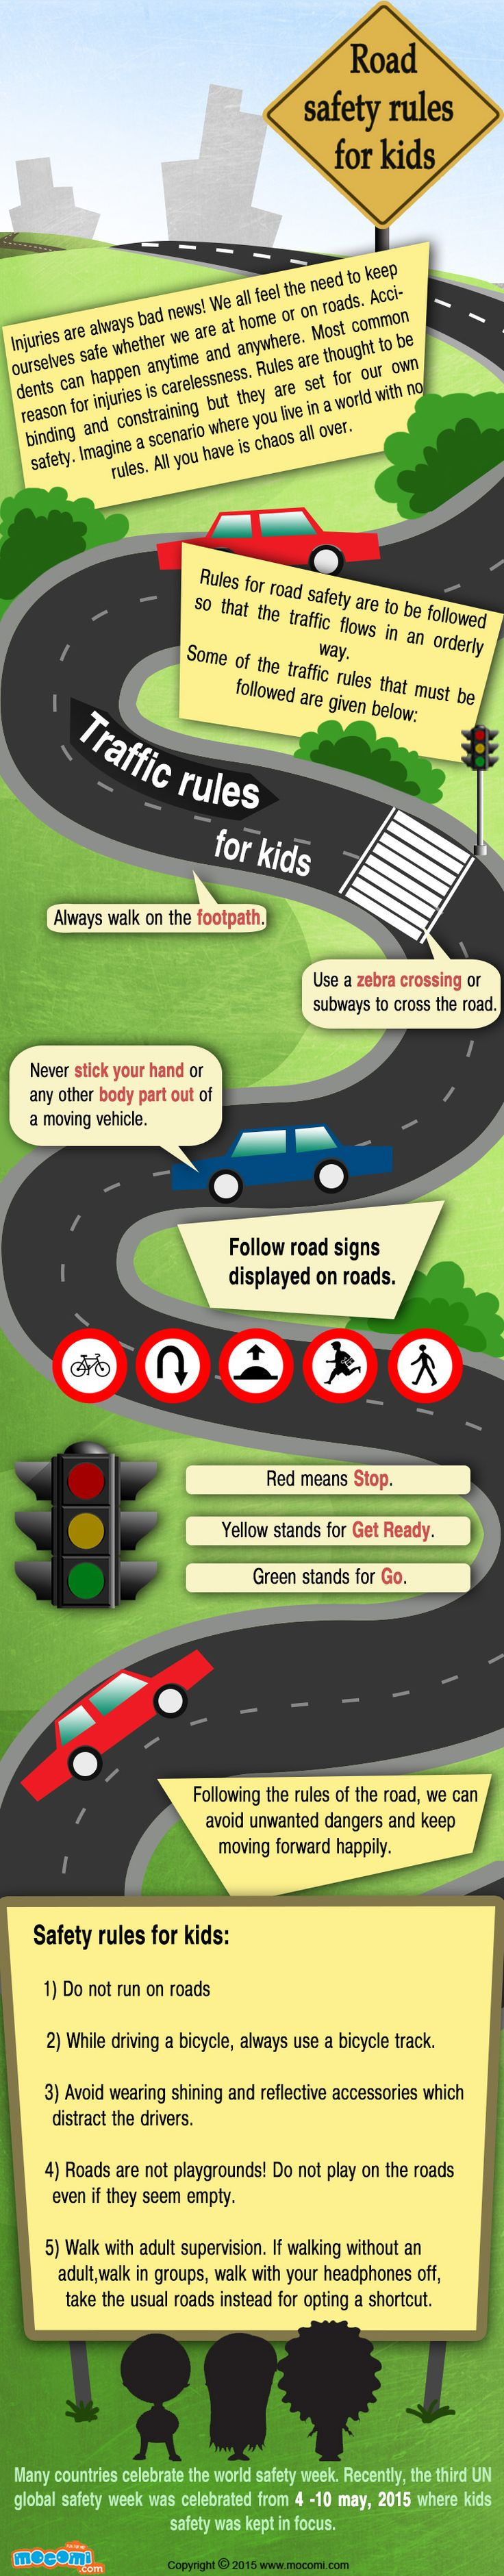 Rules for road safety are to be followed so that the traffic flows in an orderly way. 5 Important Road Safety Rules for Kids!